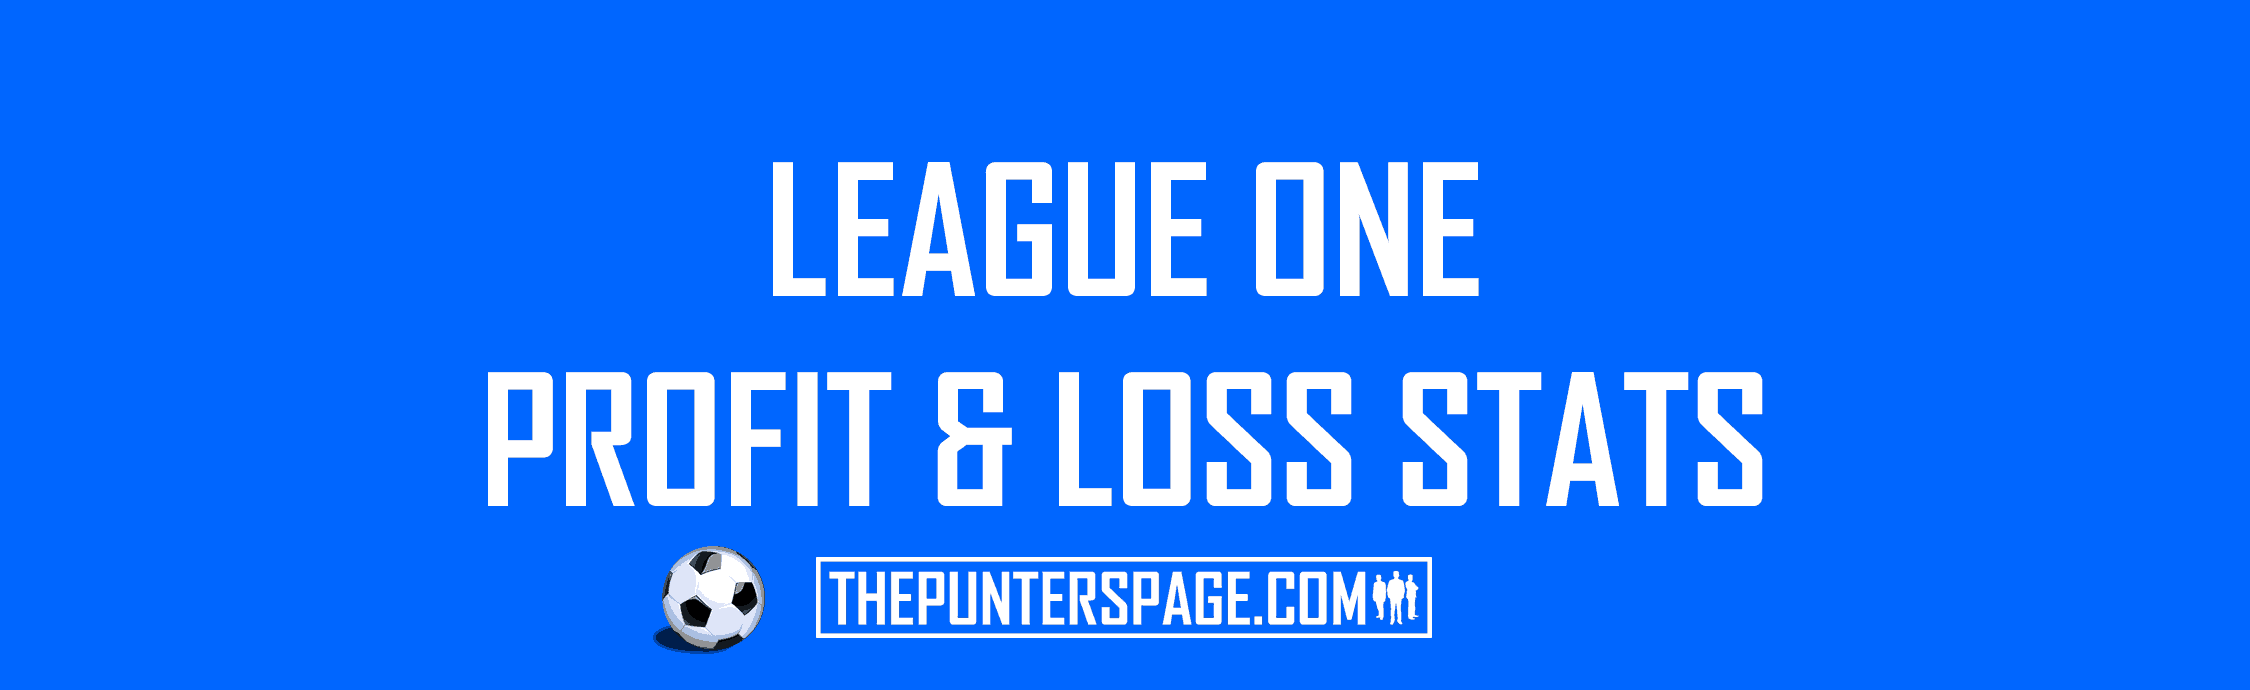 English League One Profit & Loss Statistics